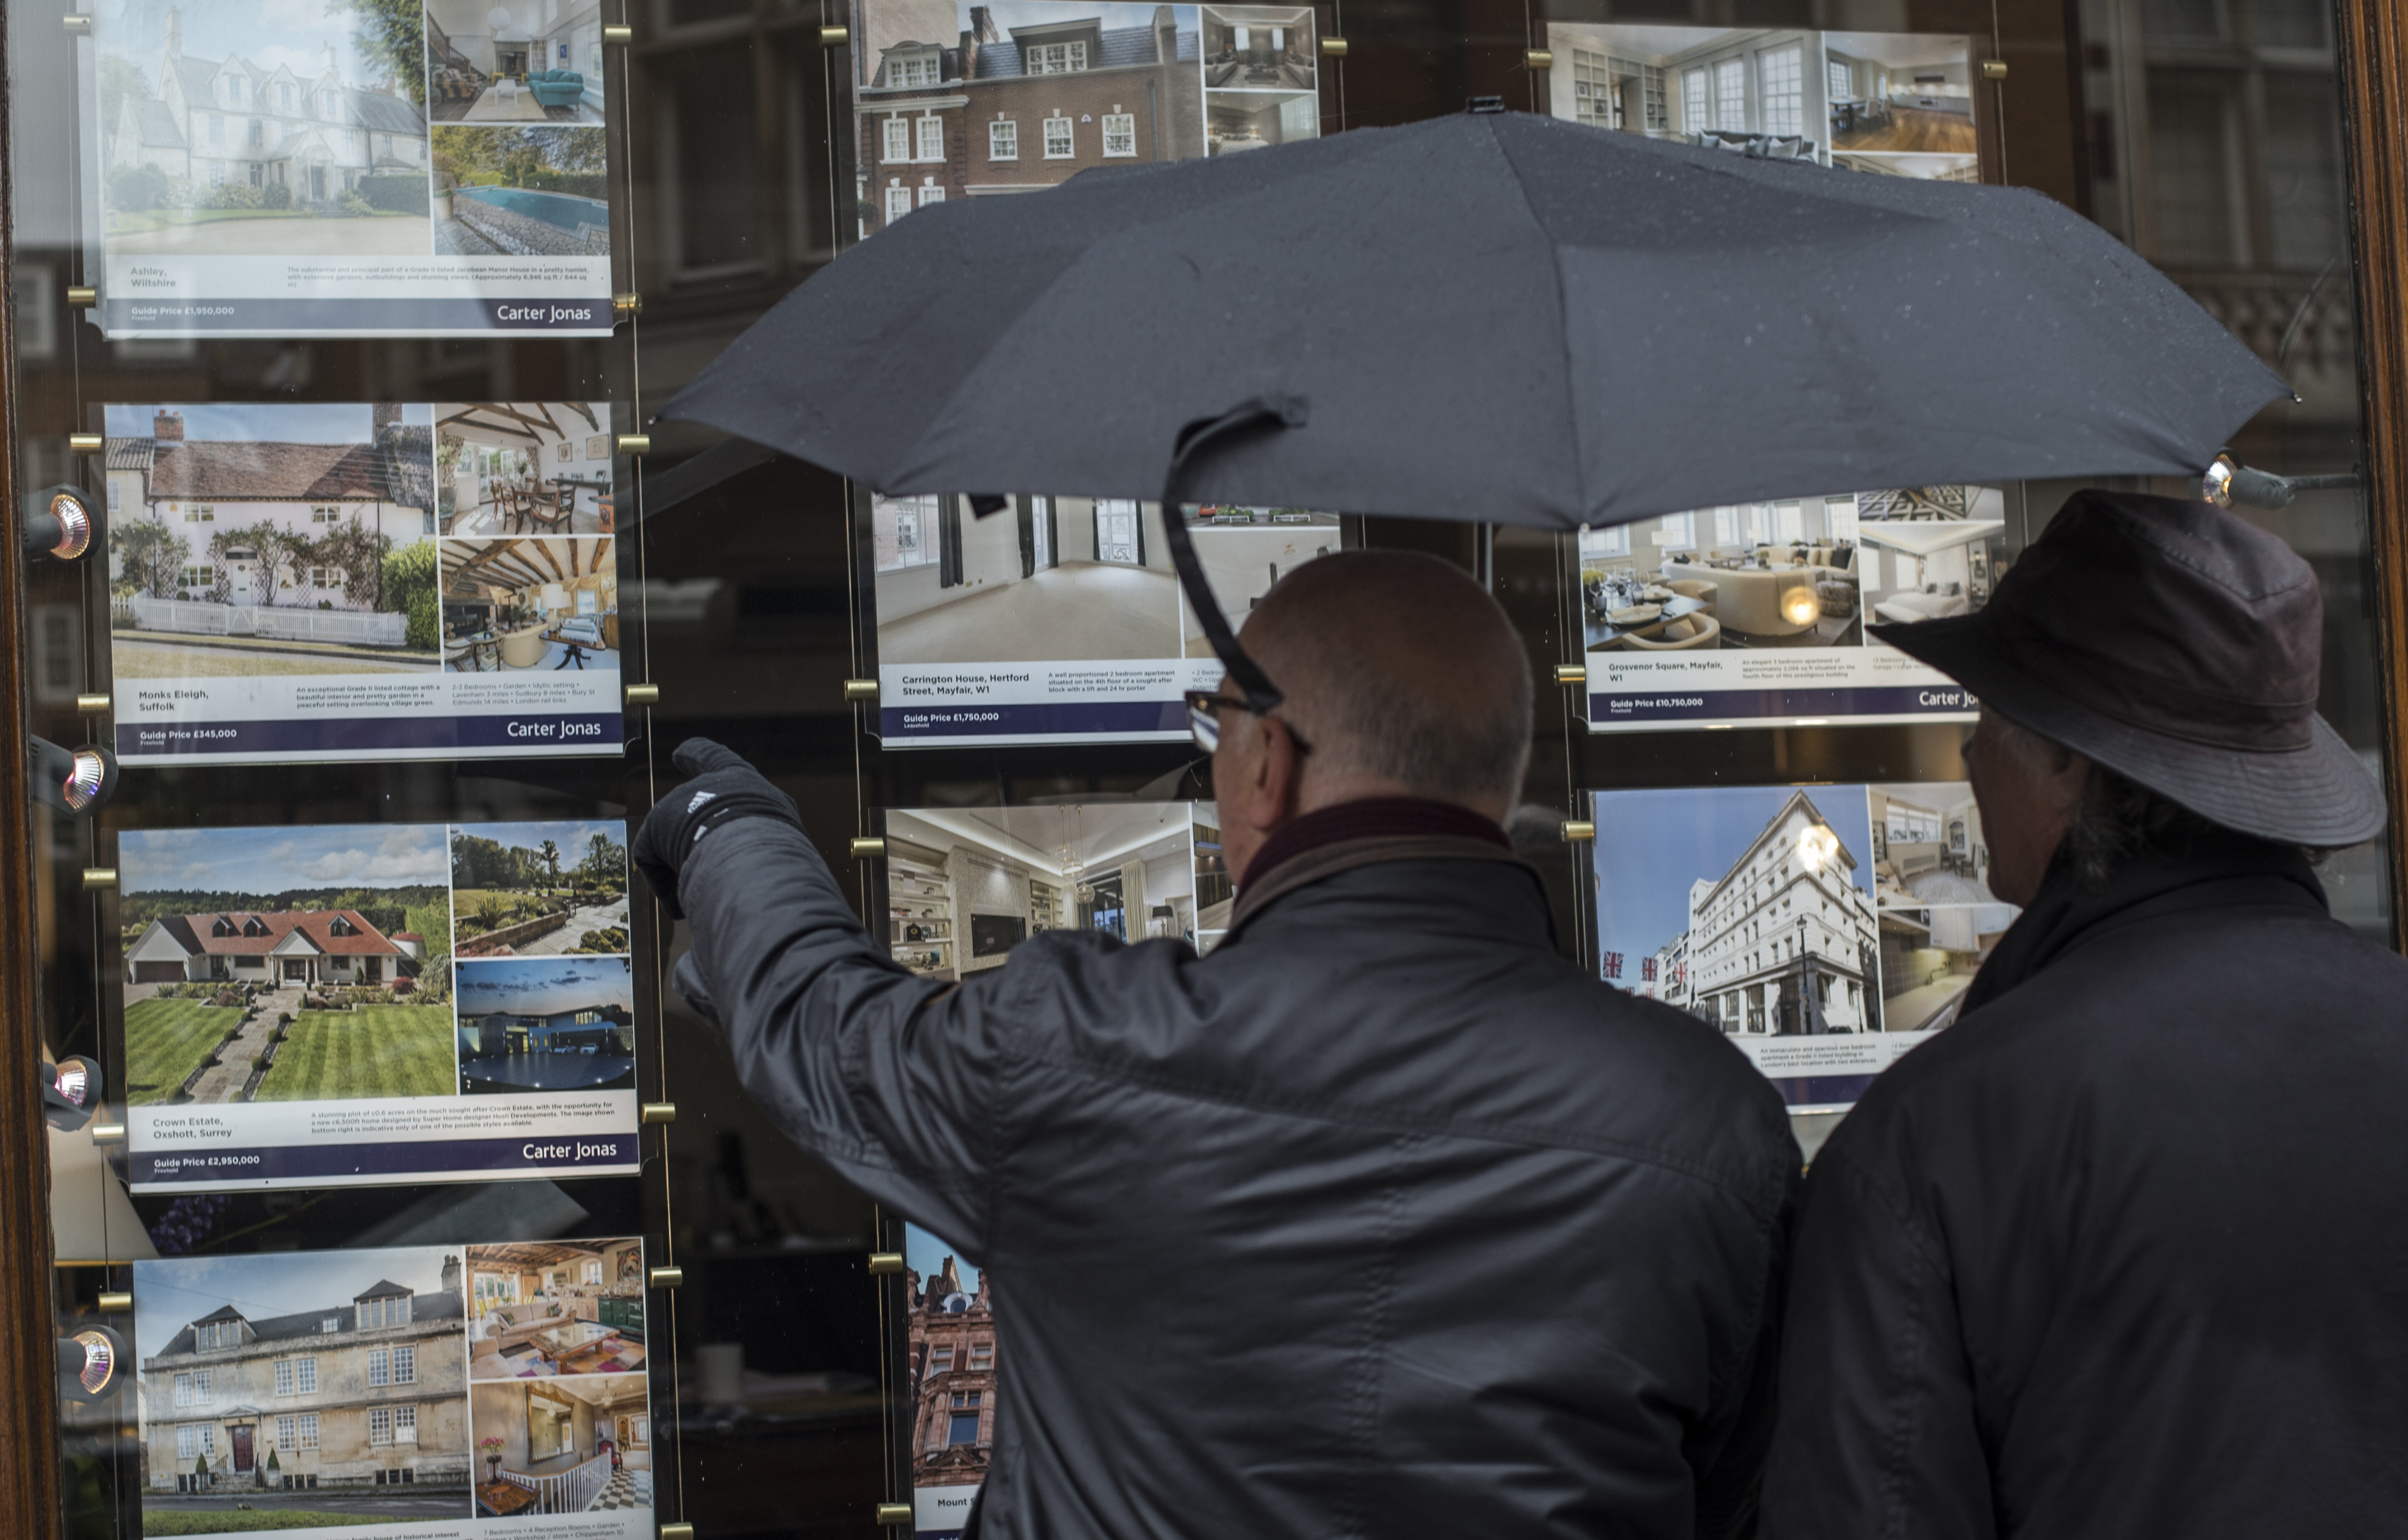 United Kingdom house prices drop 1.2% in September, dragged lower by London - Rightmove